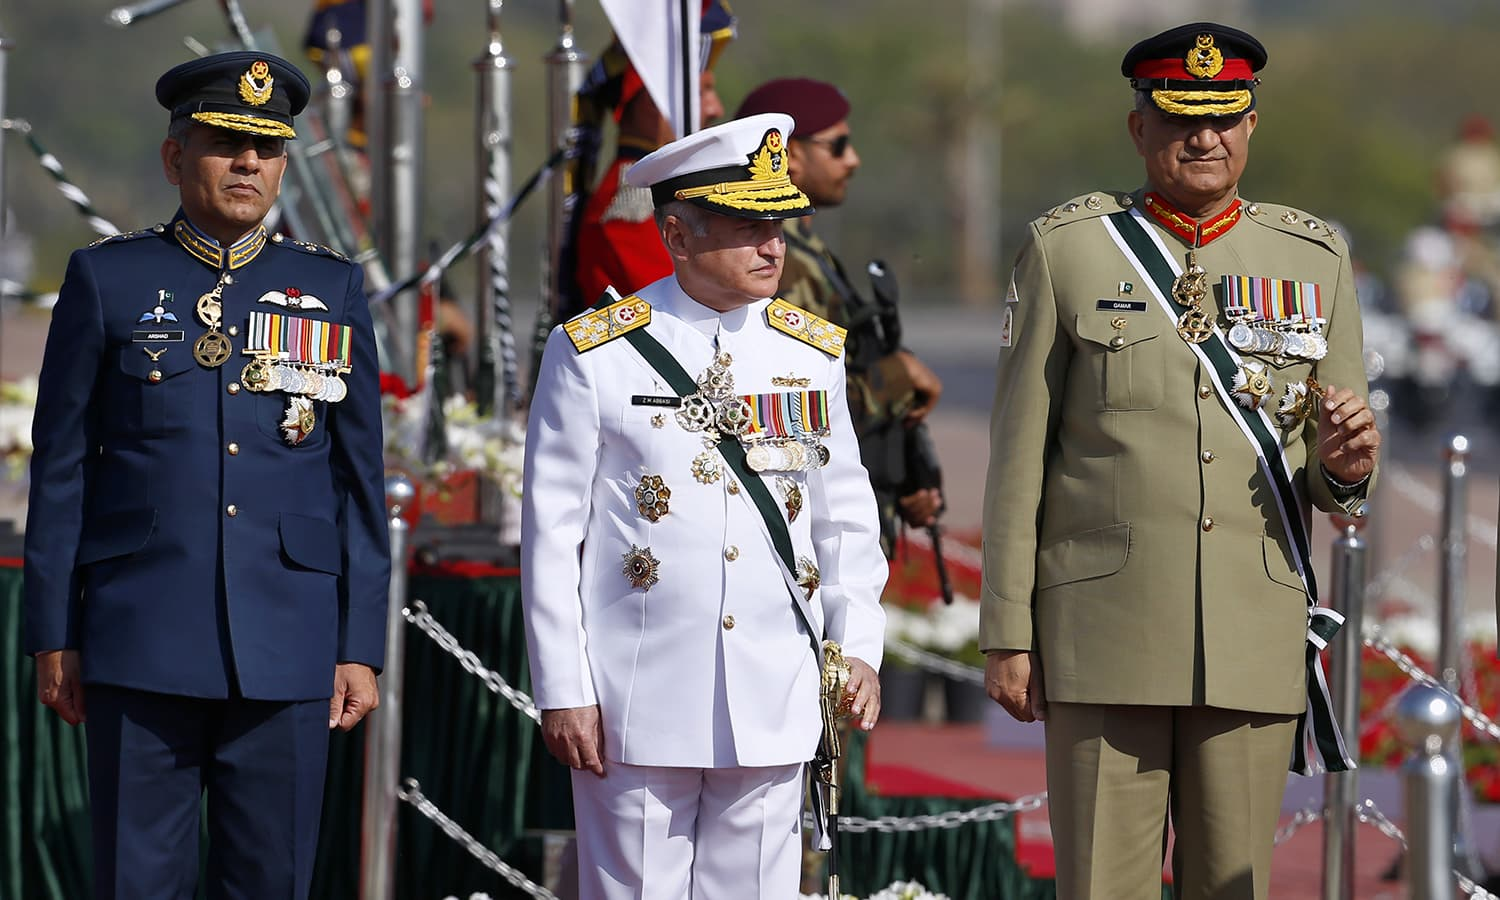 Pakistan Army Chief Qamar Javed Bajwa, Naval Chief Admiral Zafar Mahmood Abbasi, and a top officer of Pakistan Air Force arrive for a military parade in Islamabad. ─AP